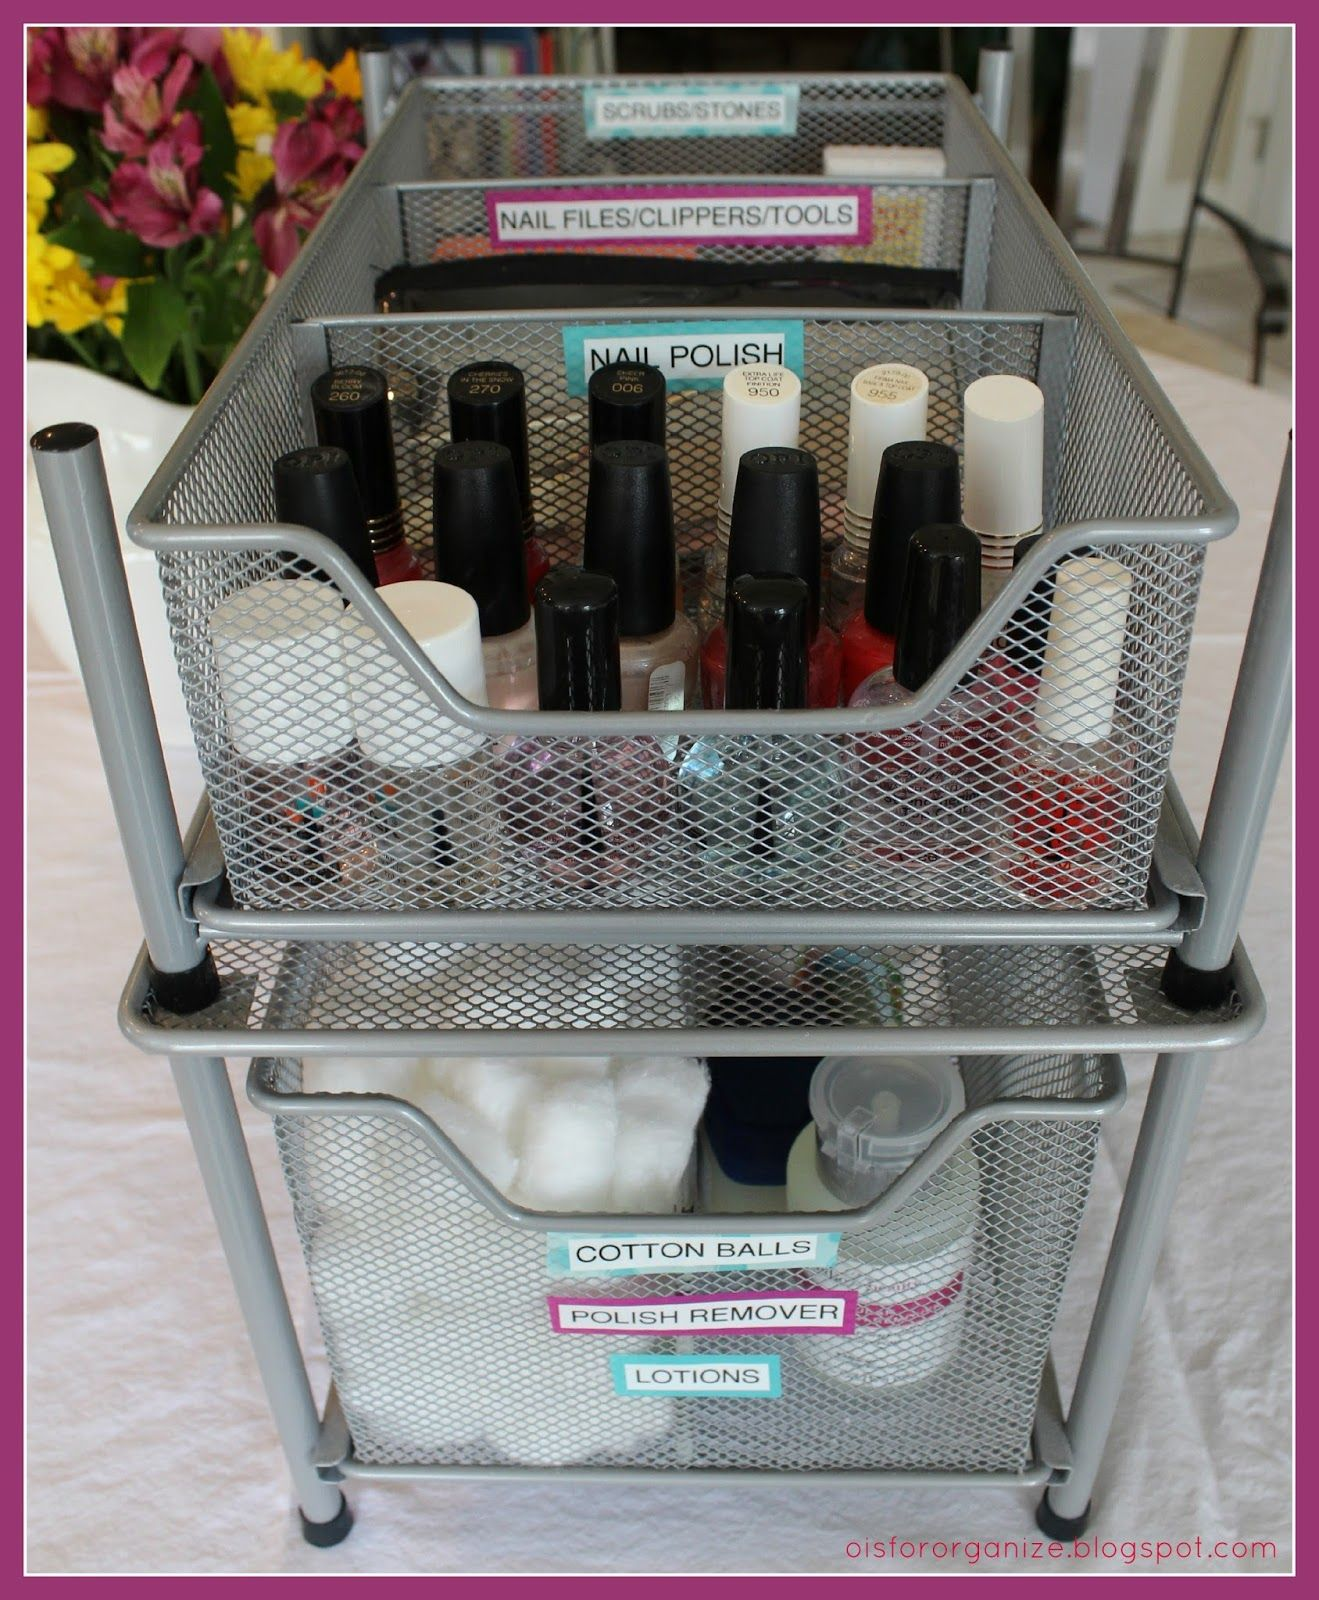 Organisation Salon Manicure Organization Organize Anything Group Board In 2019 Nail